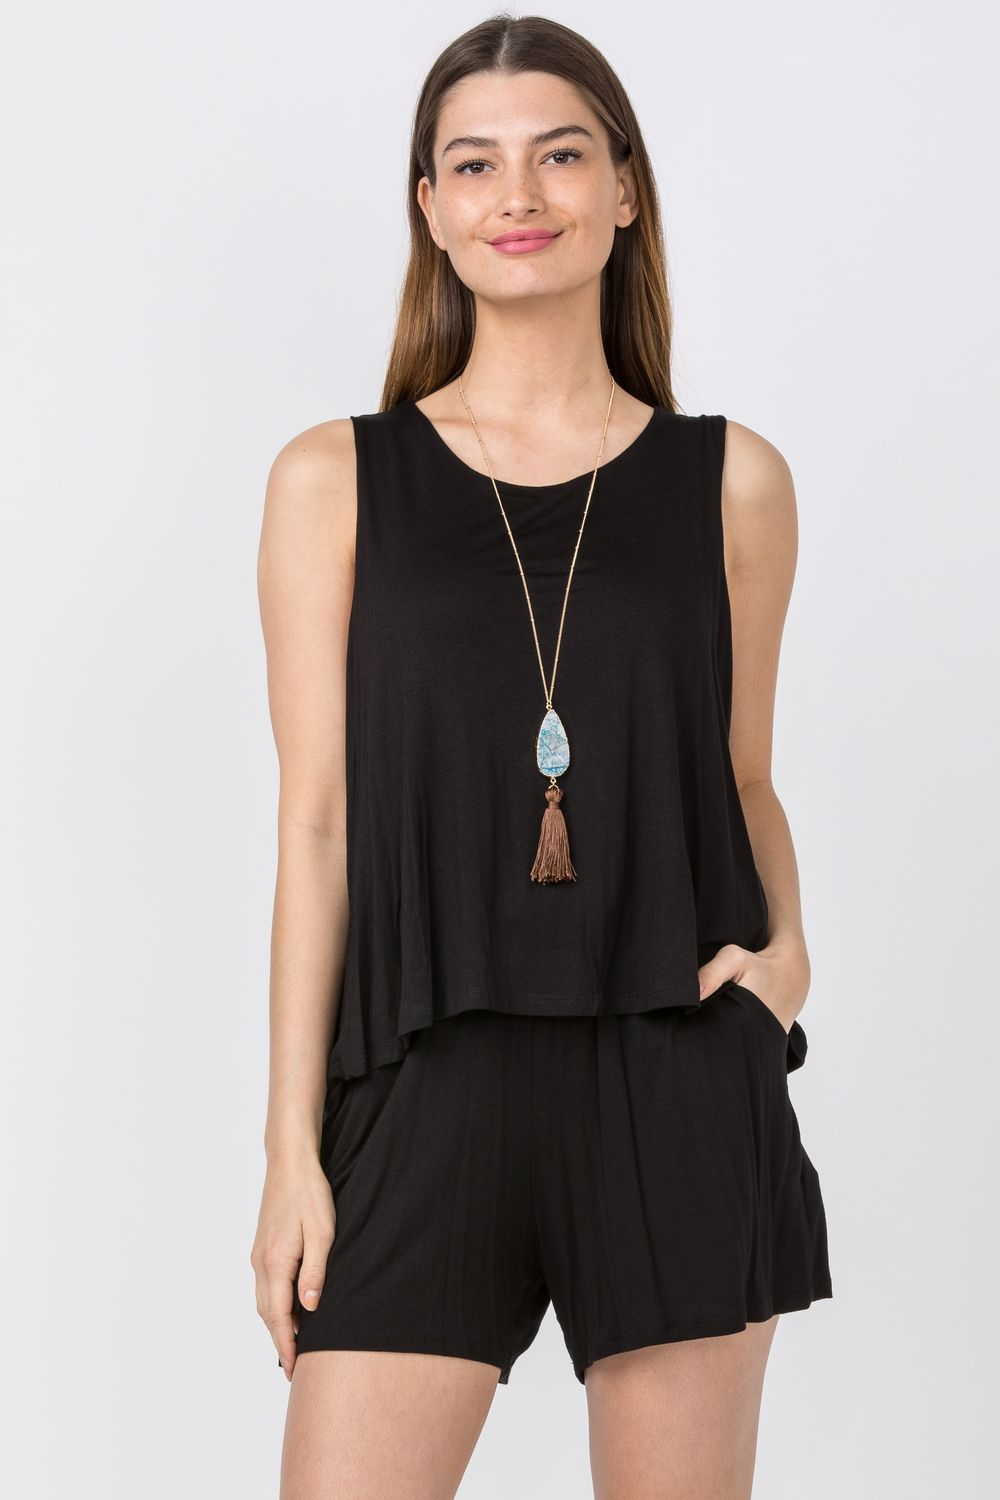 Solid Black Layered Romper